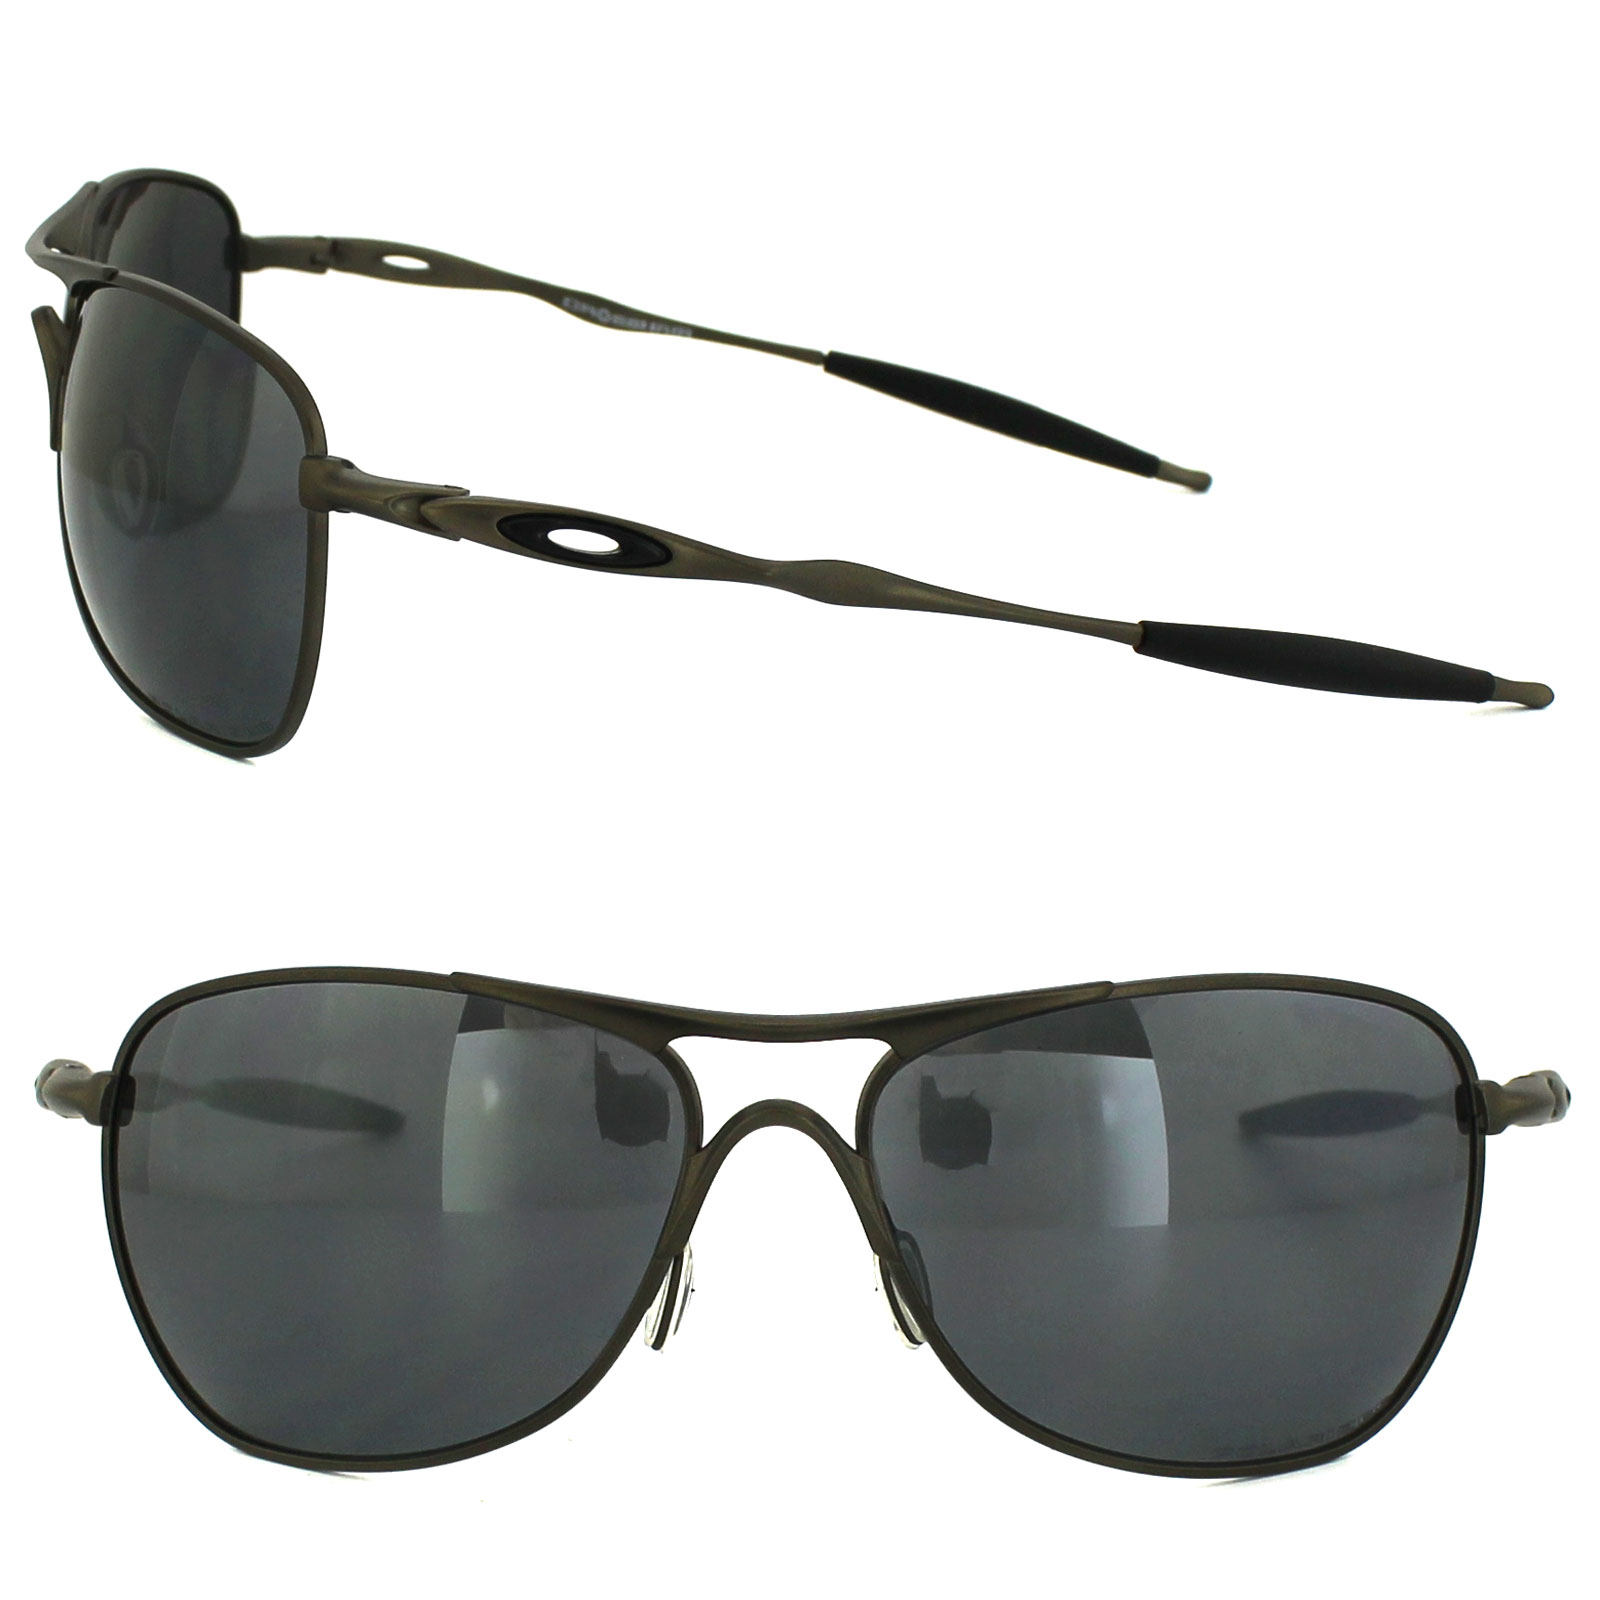 b243d42441 ... closeout sentinel oakley sunglasses ti crosshair pewter black iridium  polarized oo6014 02 df567 62dee